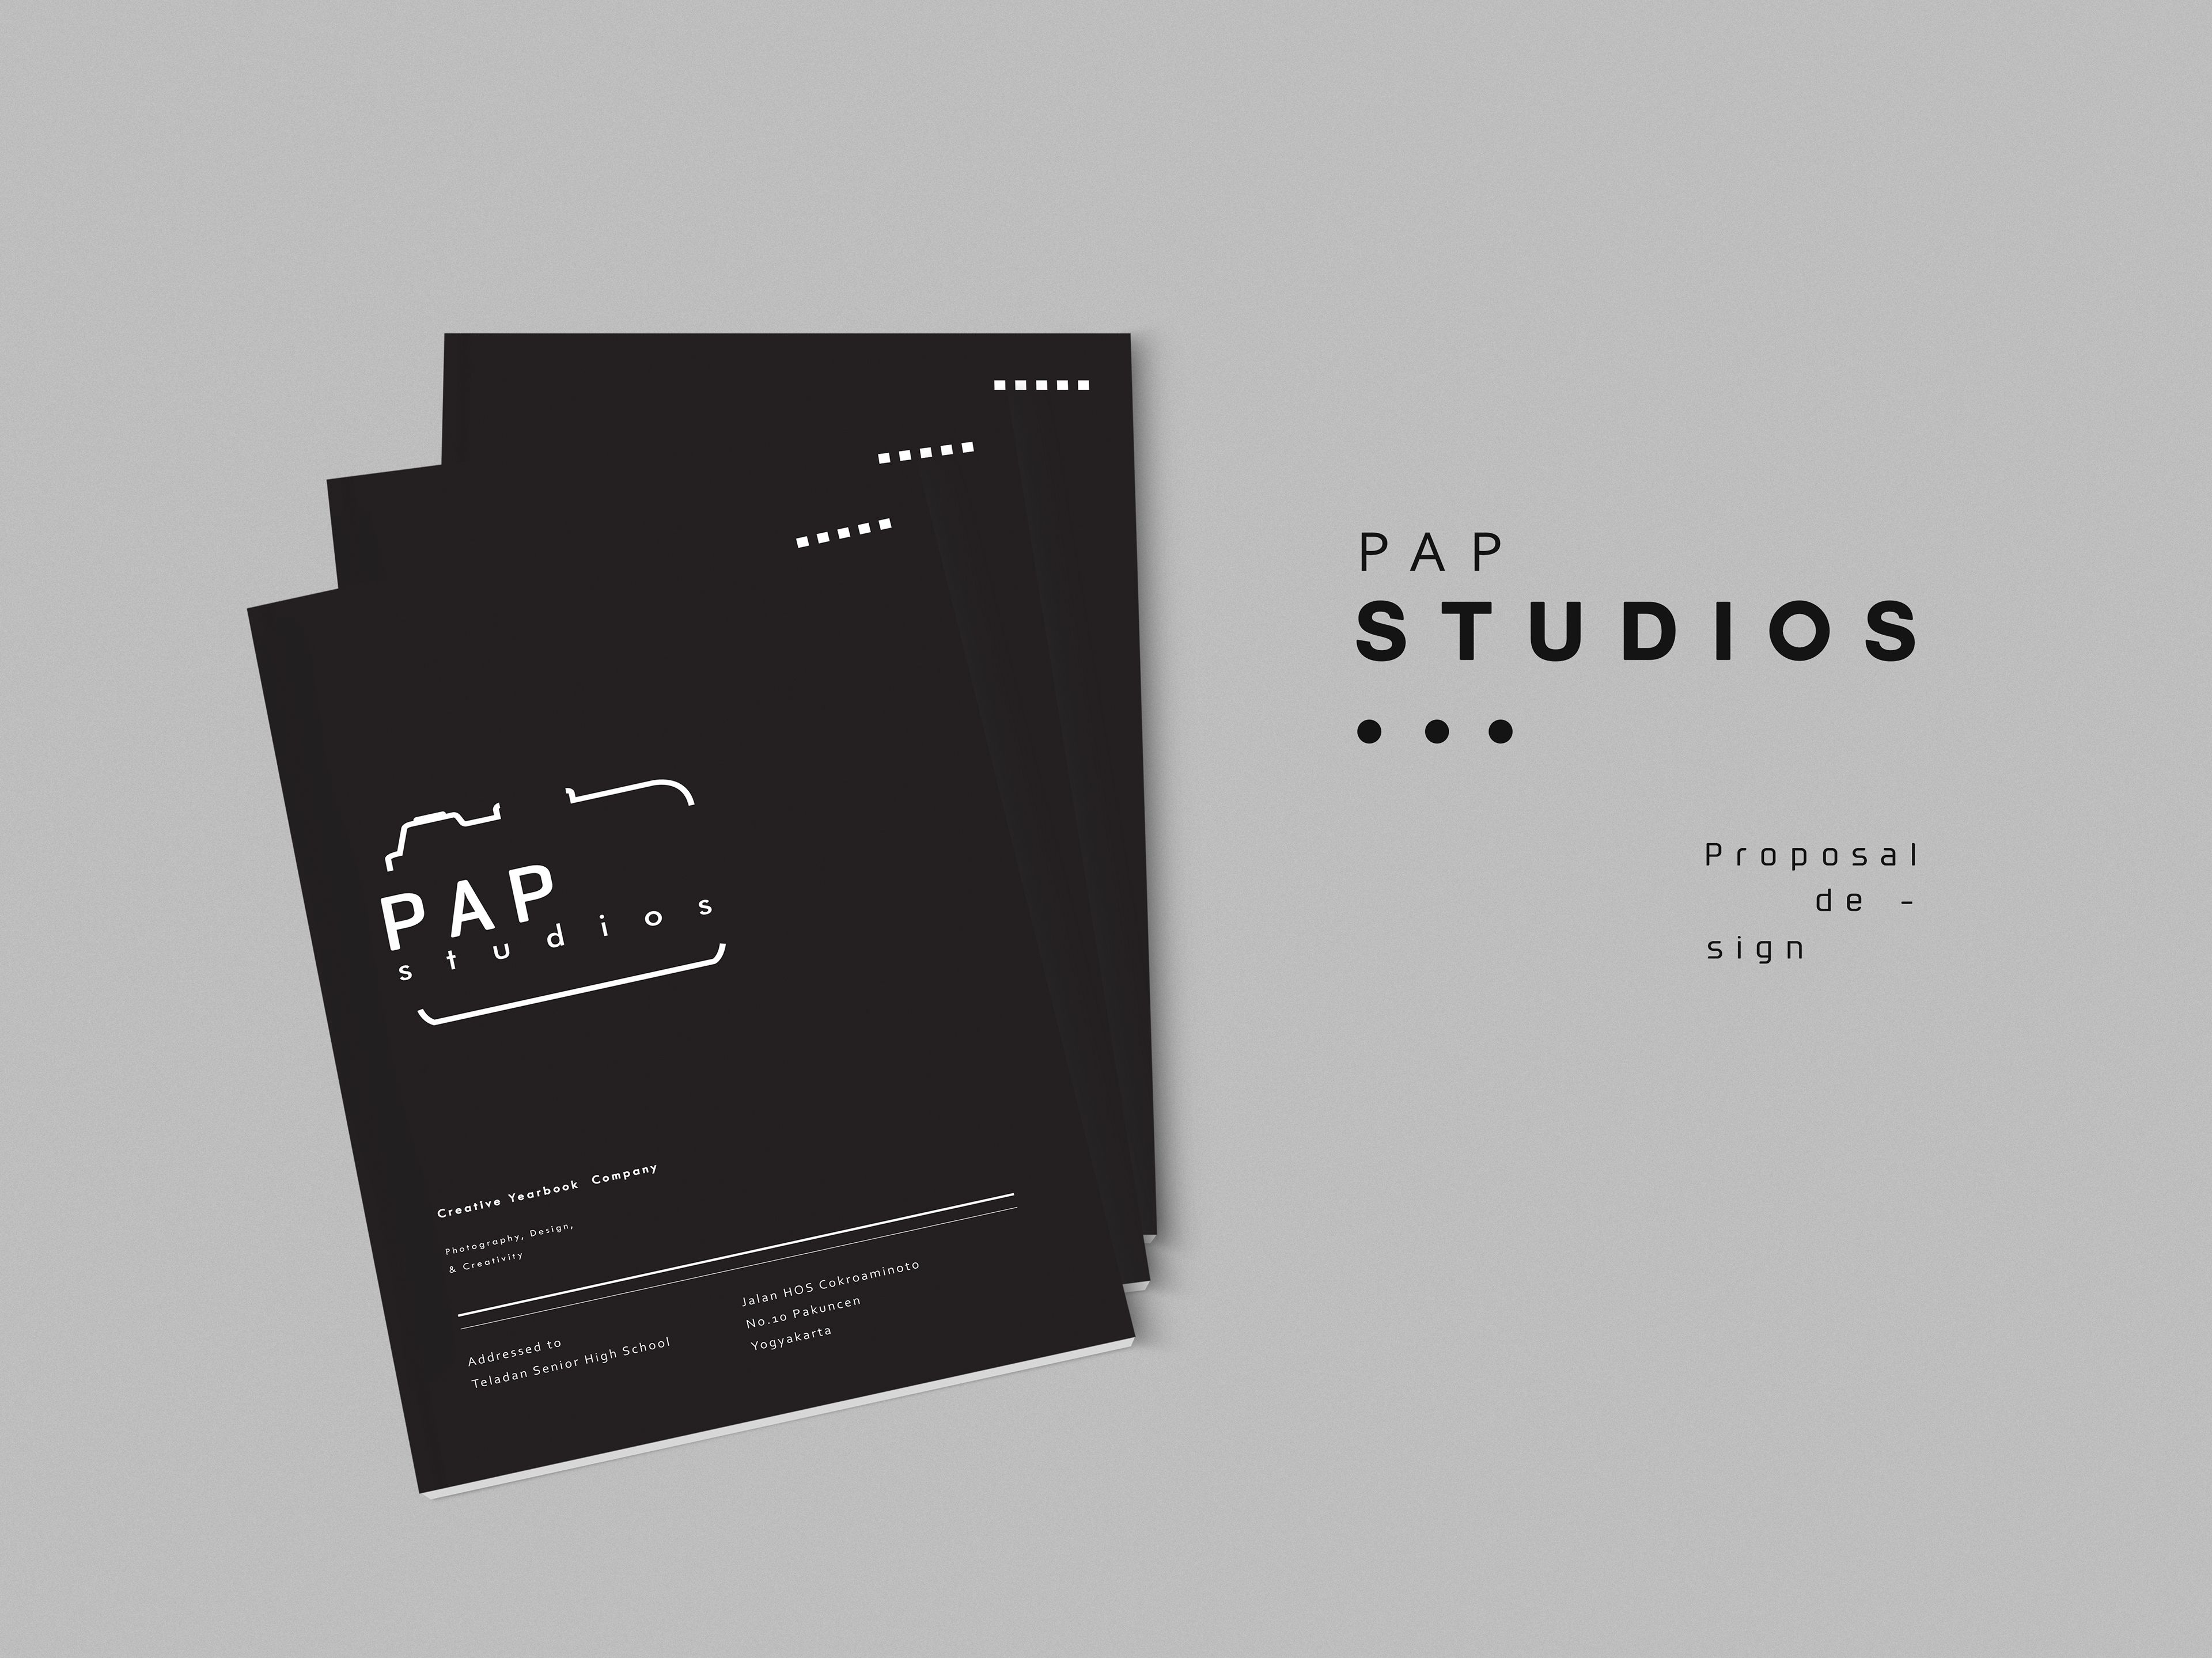 Check out my project PAP studios proposal